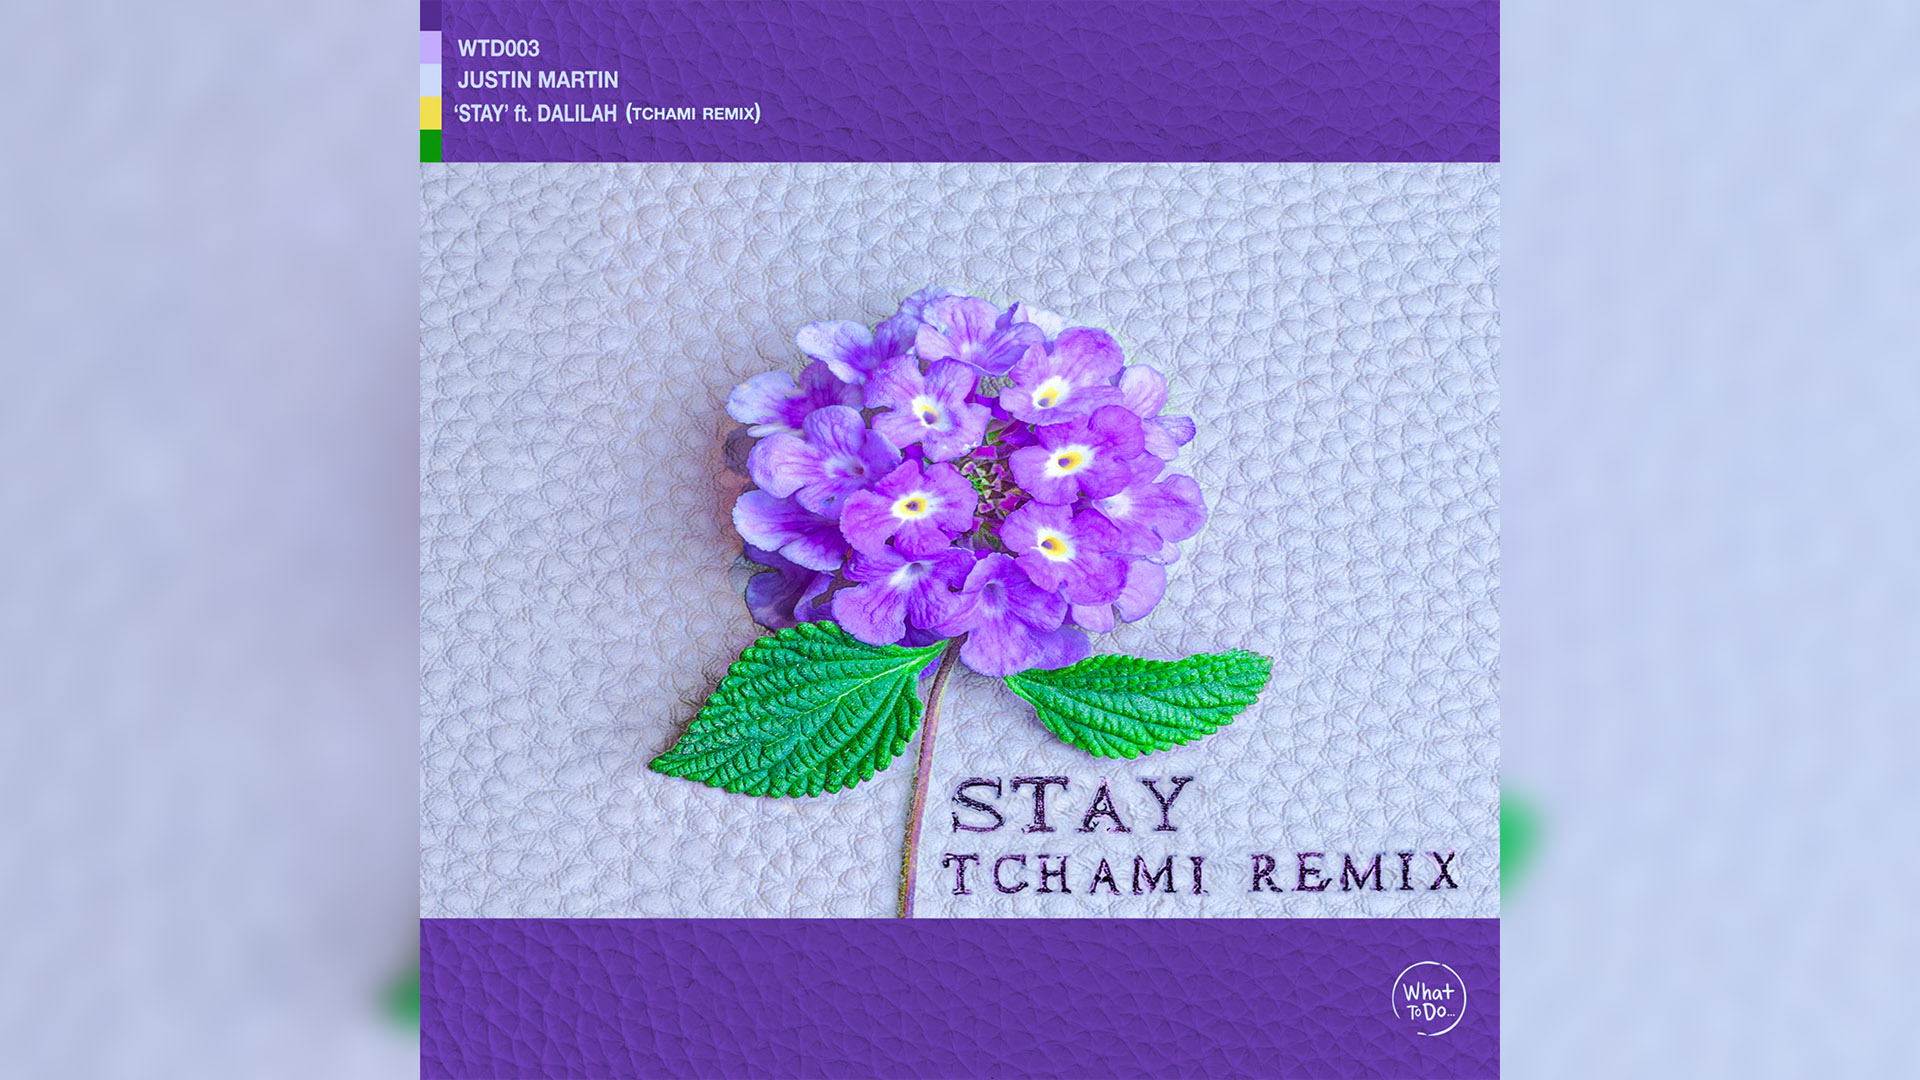 Stay - Tchami Remix